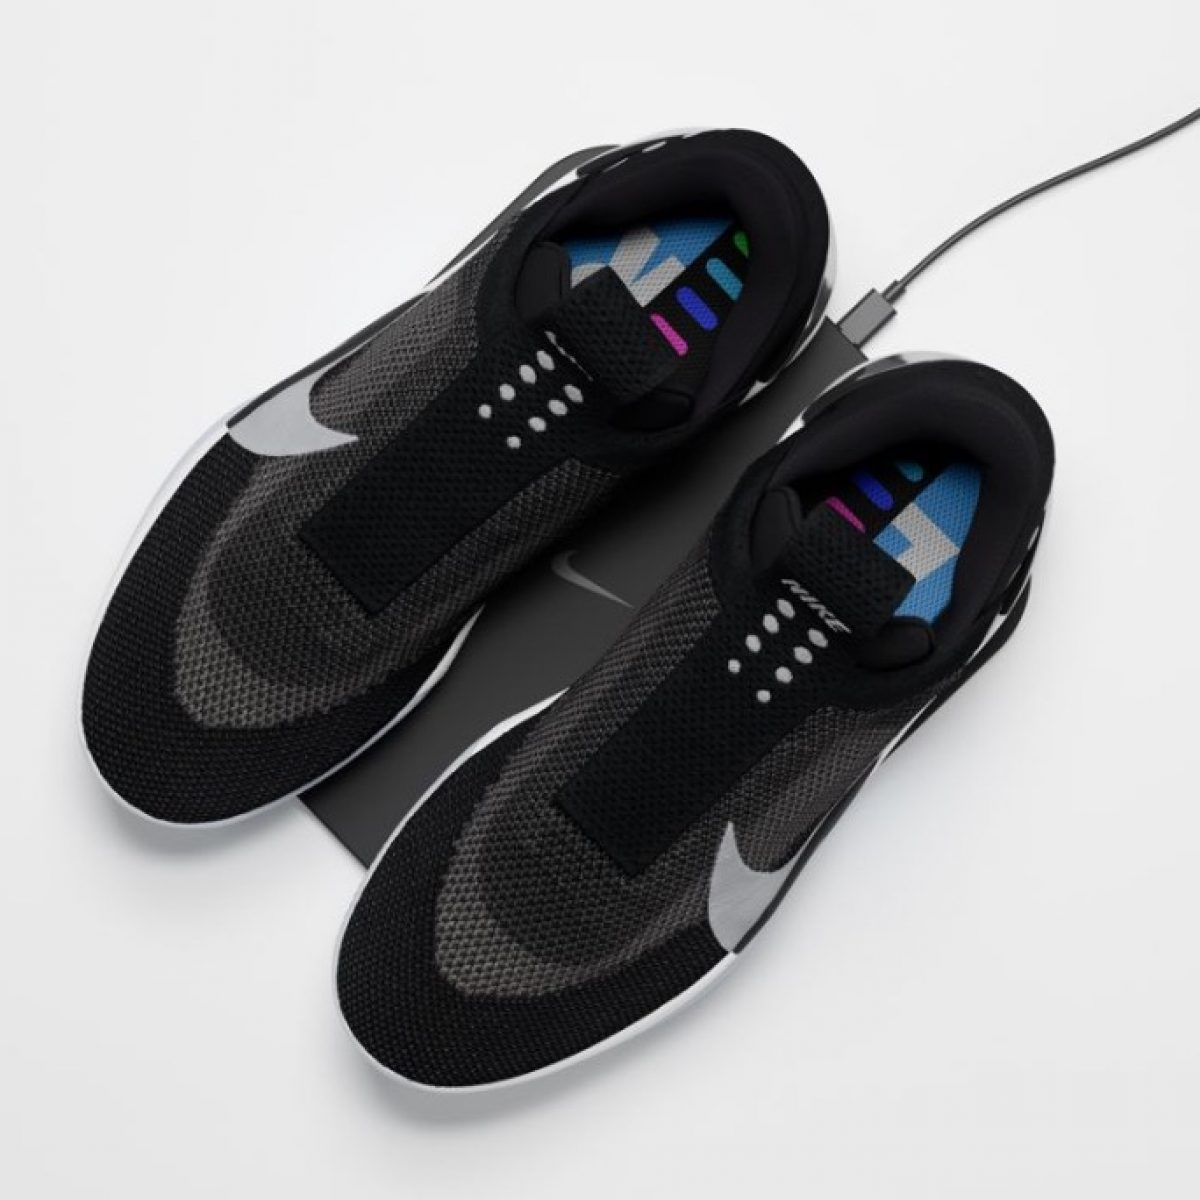 Nike S New Adapt Bb Shoes Self Lace Wirelessly Charge Connect Via App Updated